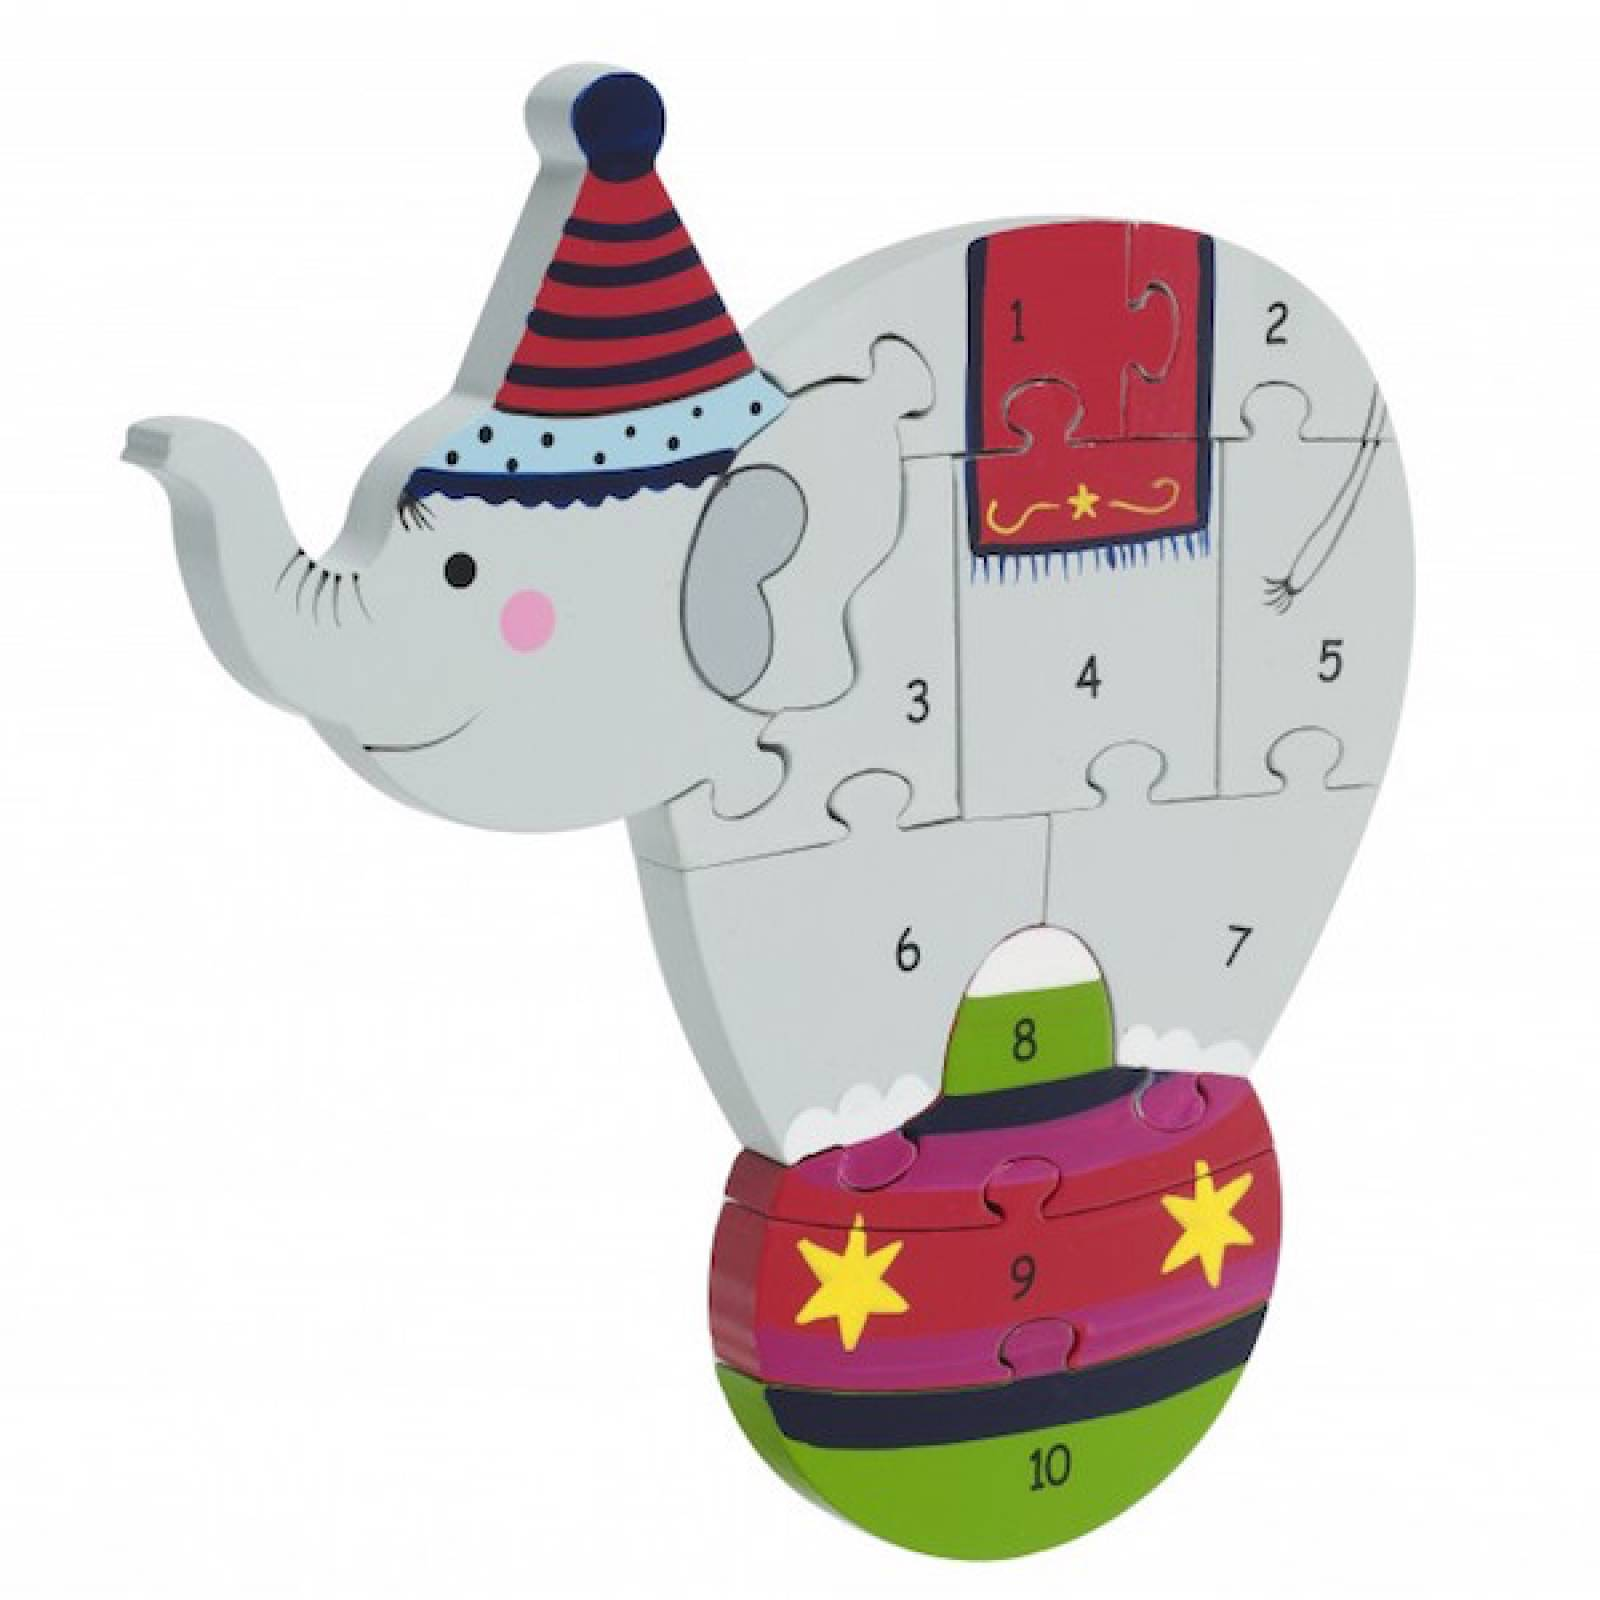 Circus Elephant Wooden Number Puzzle 1+